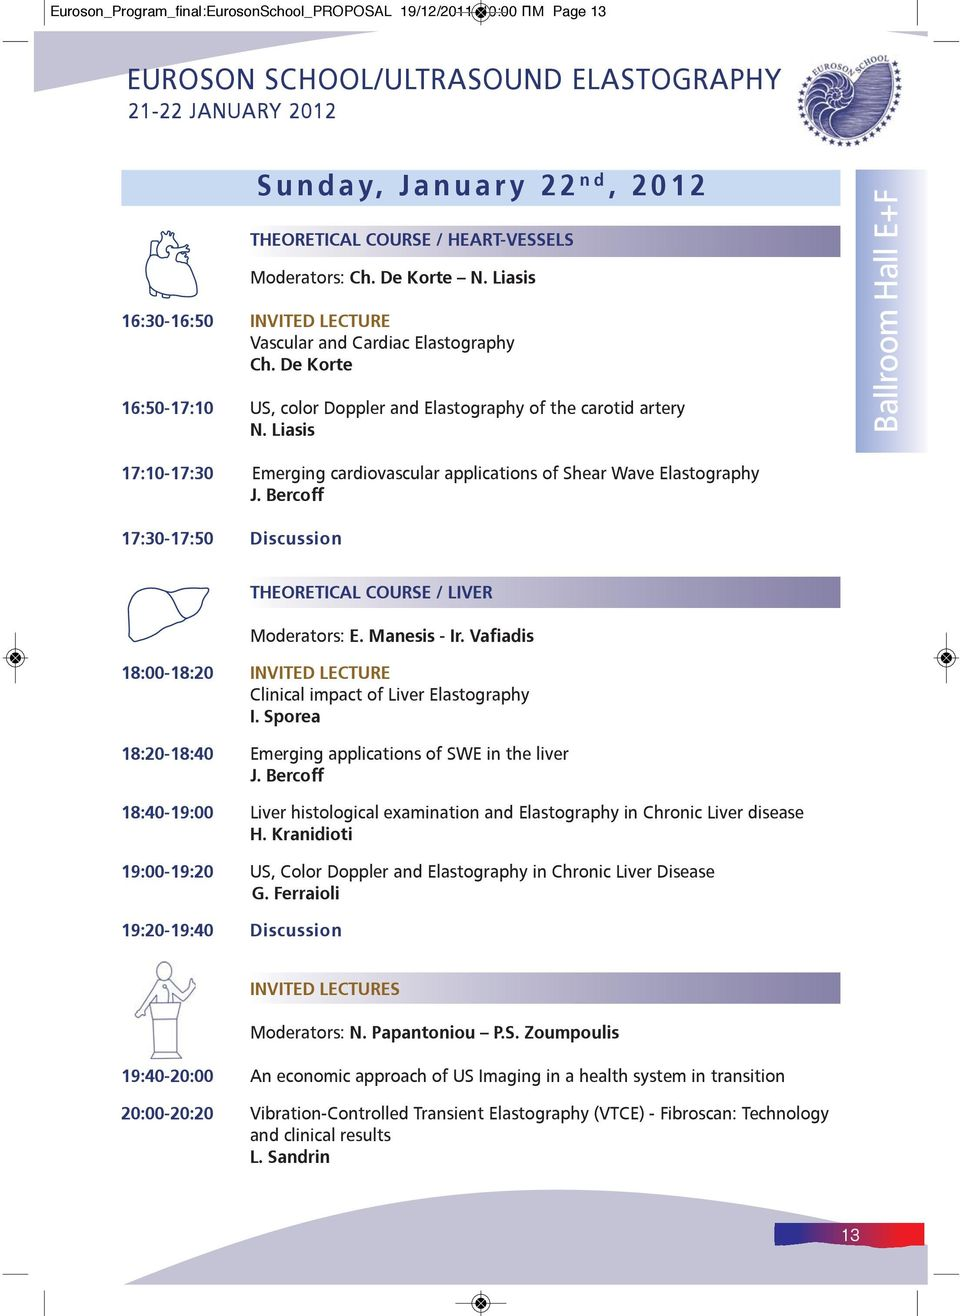 Liasis Ballroom Hall E+F 17:10-17:30 Emerging cardiovascular applications of Shear Wave Elastography J. Bercoff 17:30-17:50 Discussion THEORETICAL COURSE / LIVER Moderators: E. Manesis - Ir.